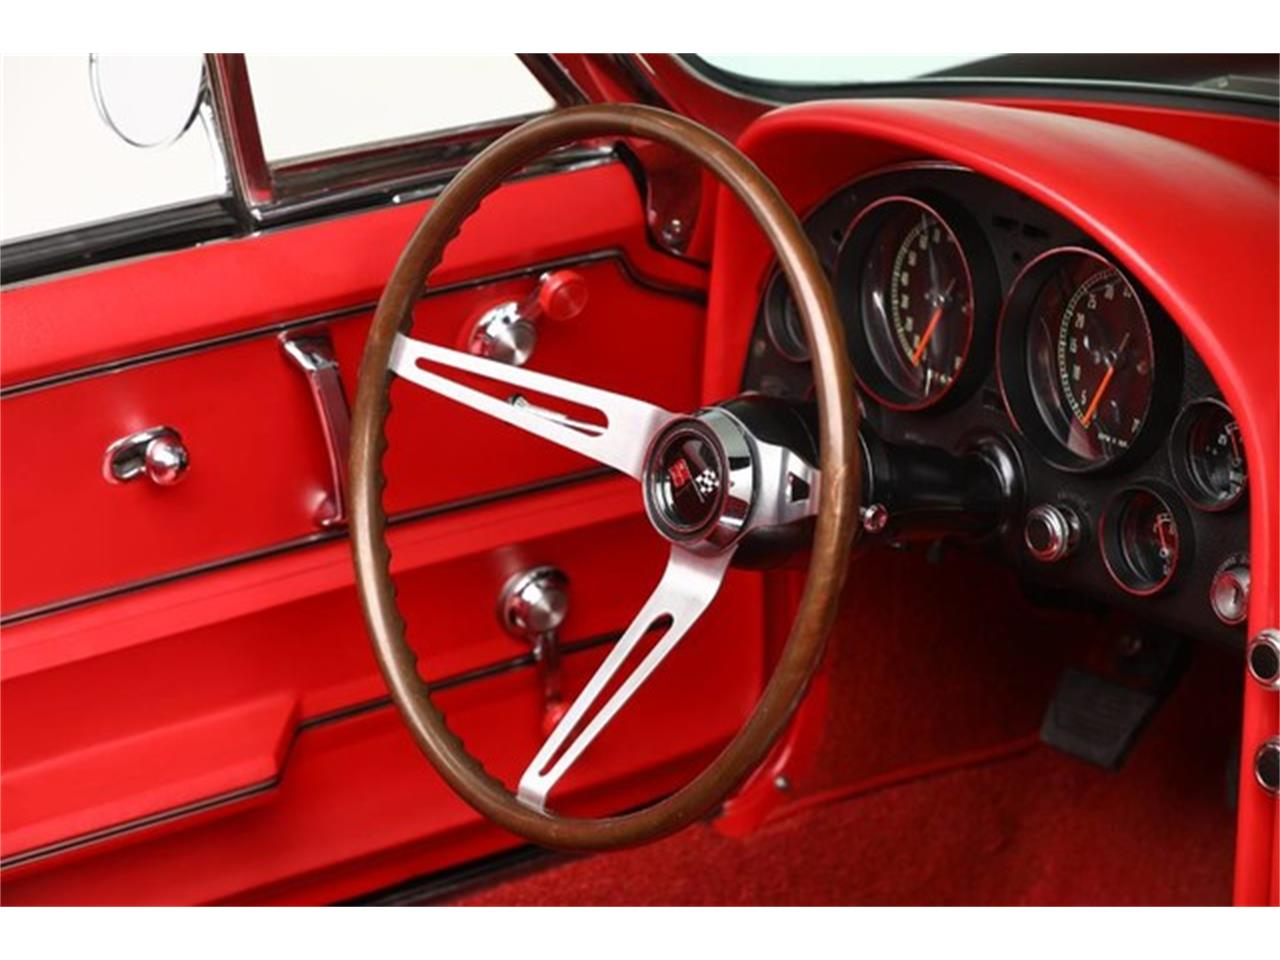 Large Picture of Classic '67 Corvette located in Clifton Park New York Auction Vehicle Offered by Prestige Motor Car Co. - PU42